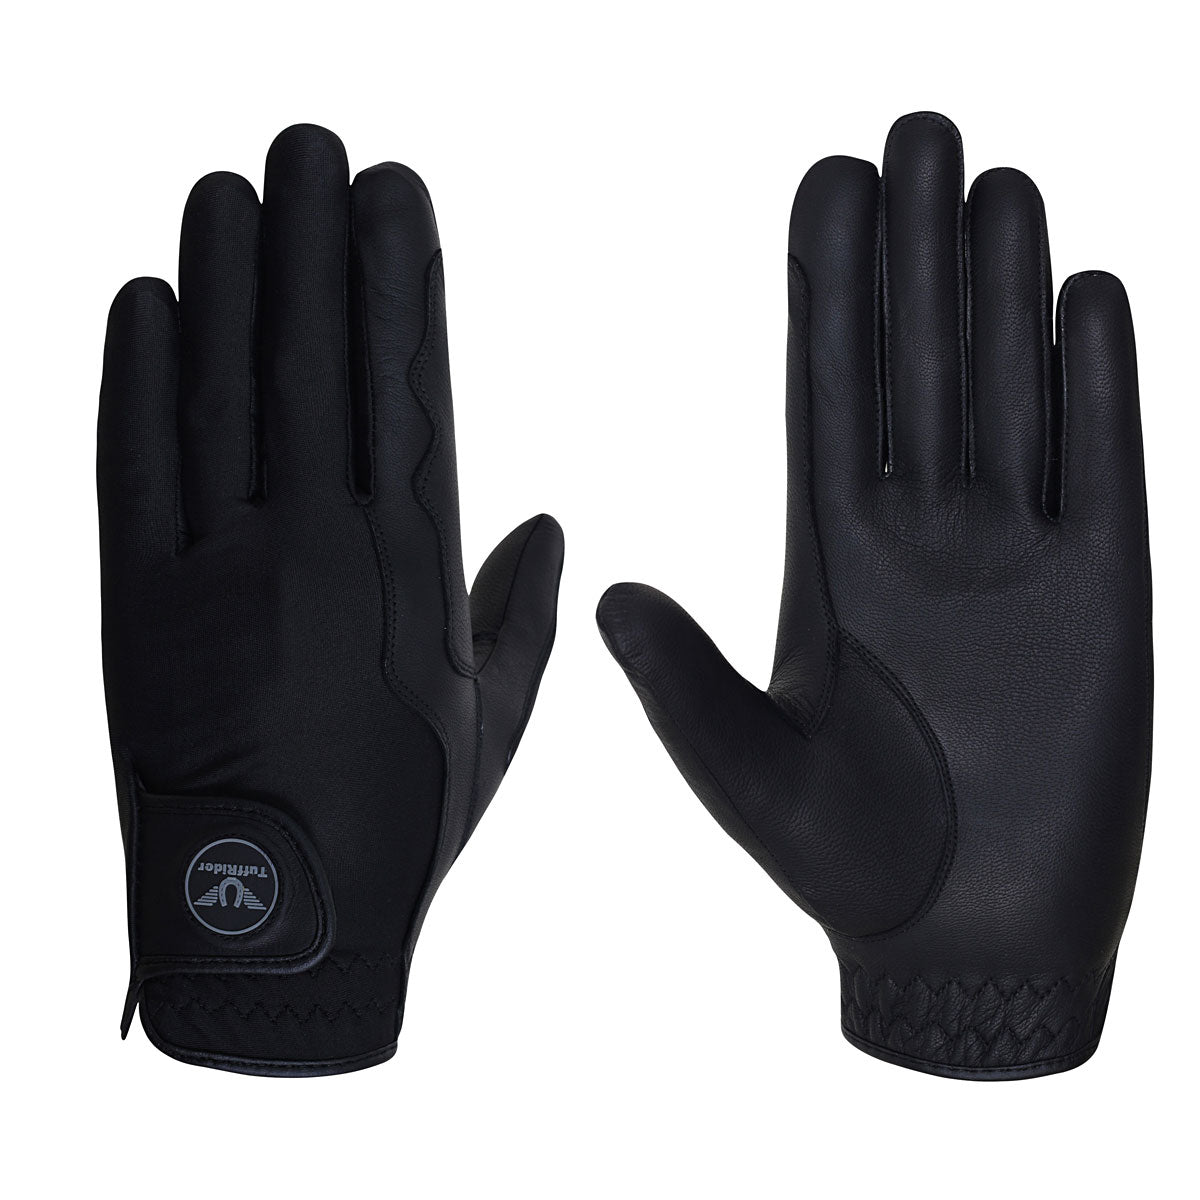 TuffRider Stretch n Grip Riding Gloves - TuffRider - Breeches.com